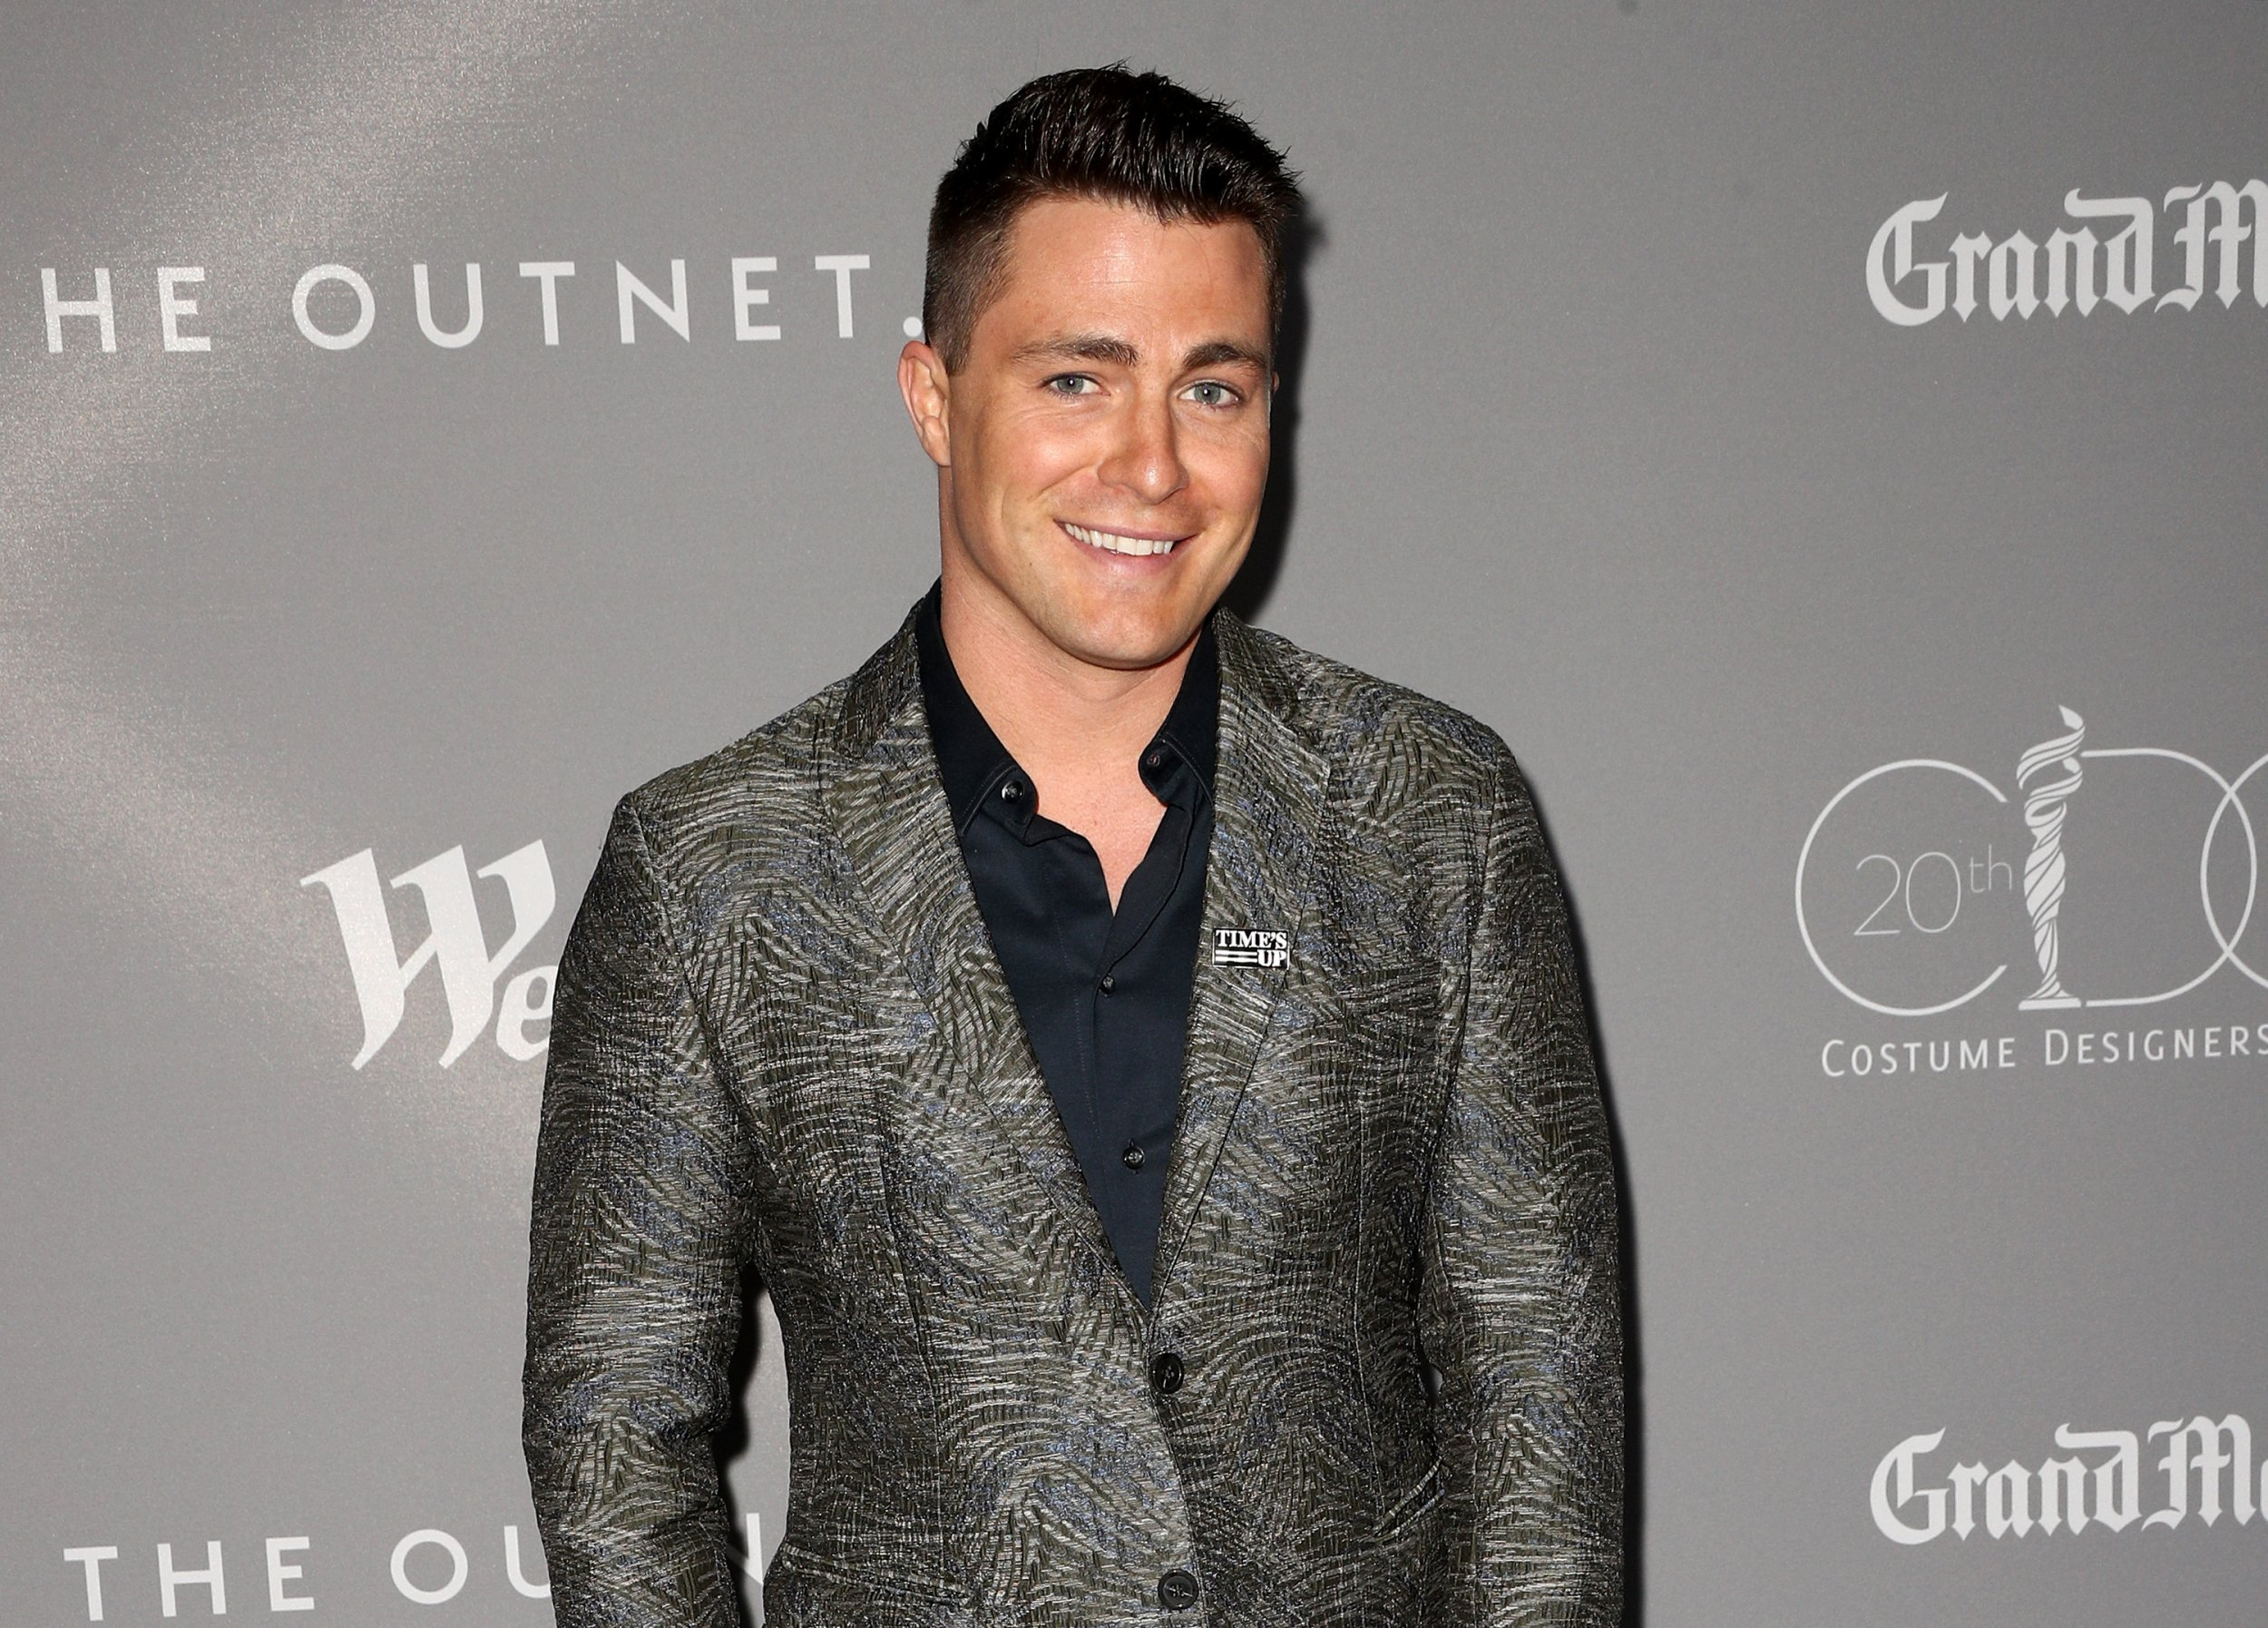 Colton haynes dating in Melbourne